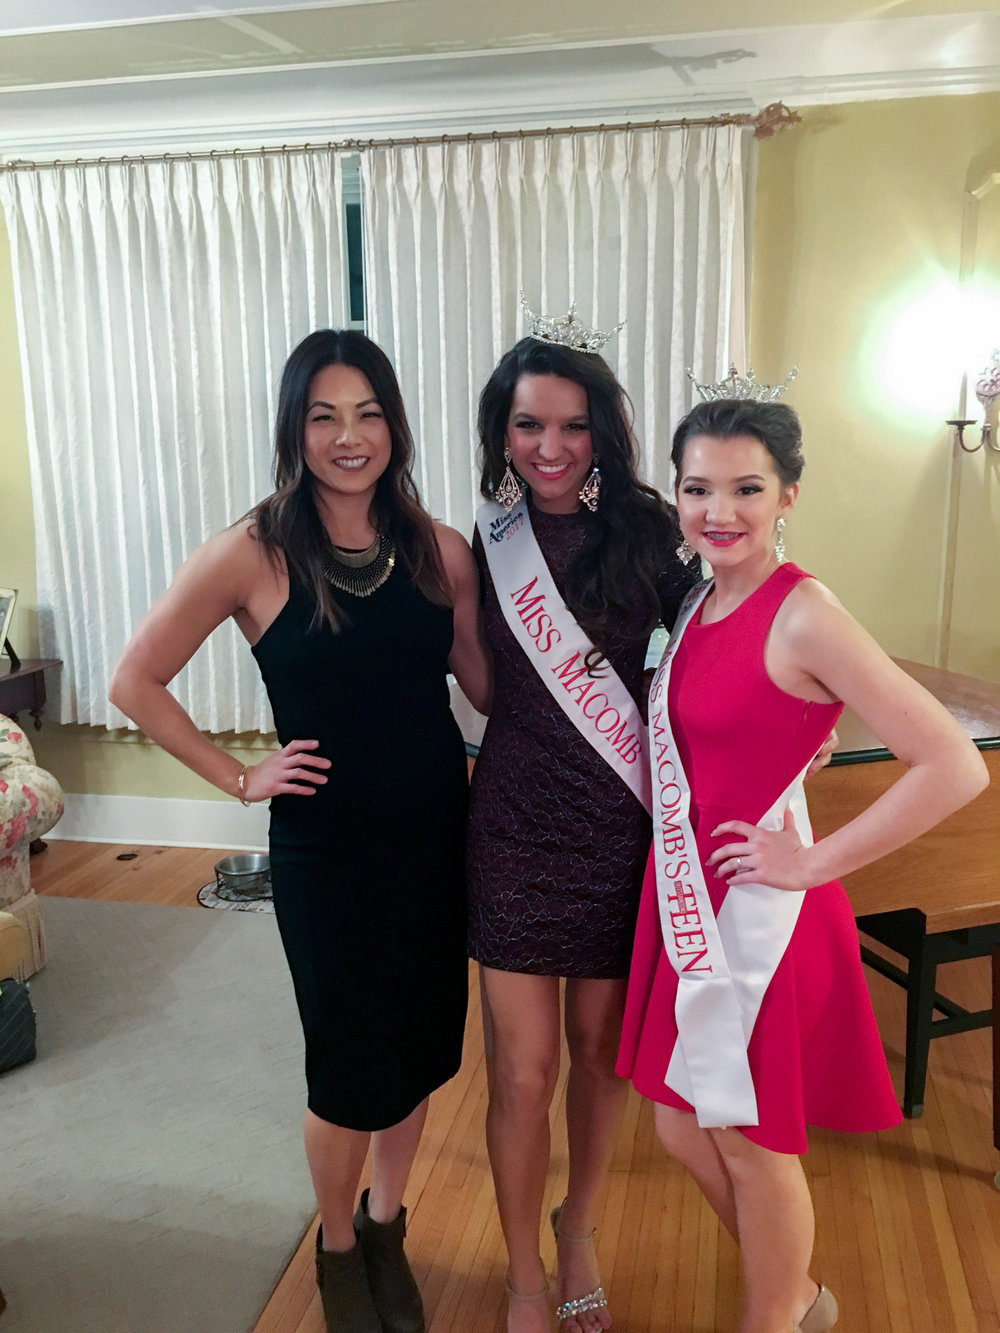 Post-pageant gathering with the new Miss Macomb representatives.